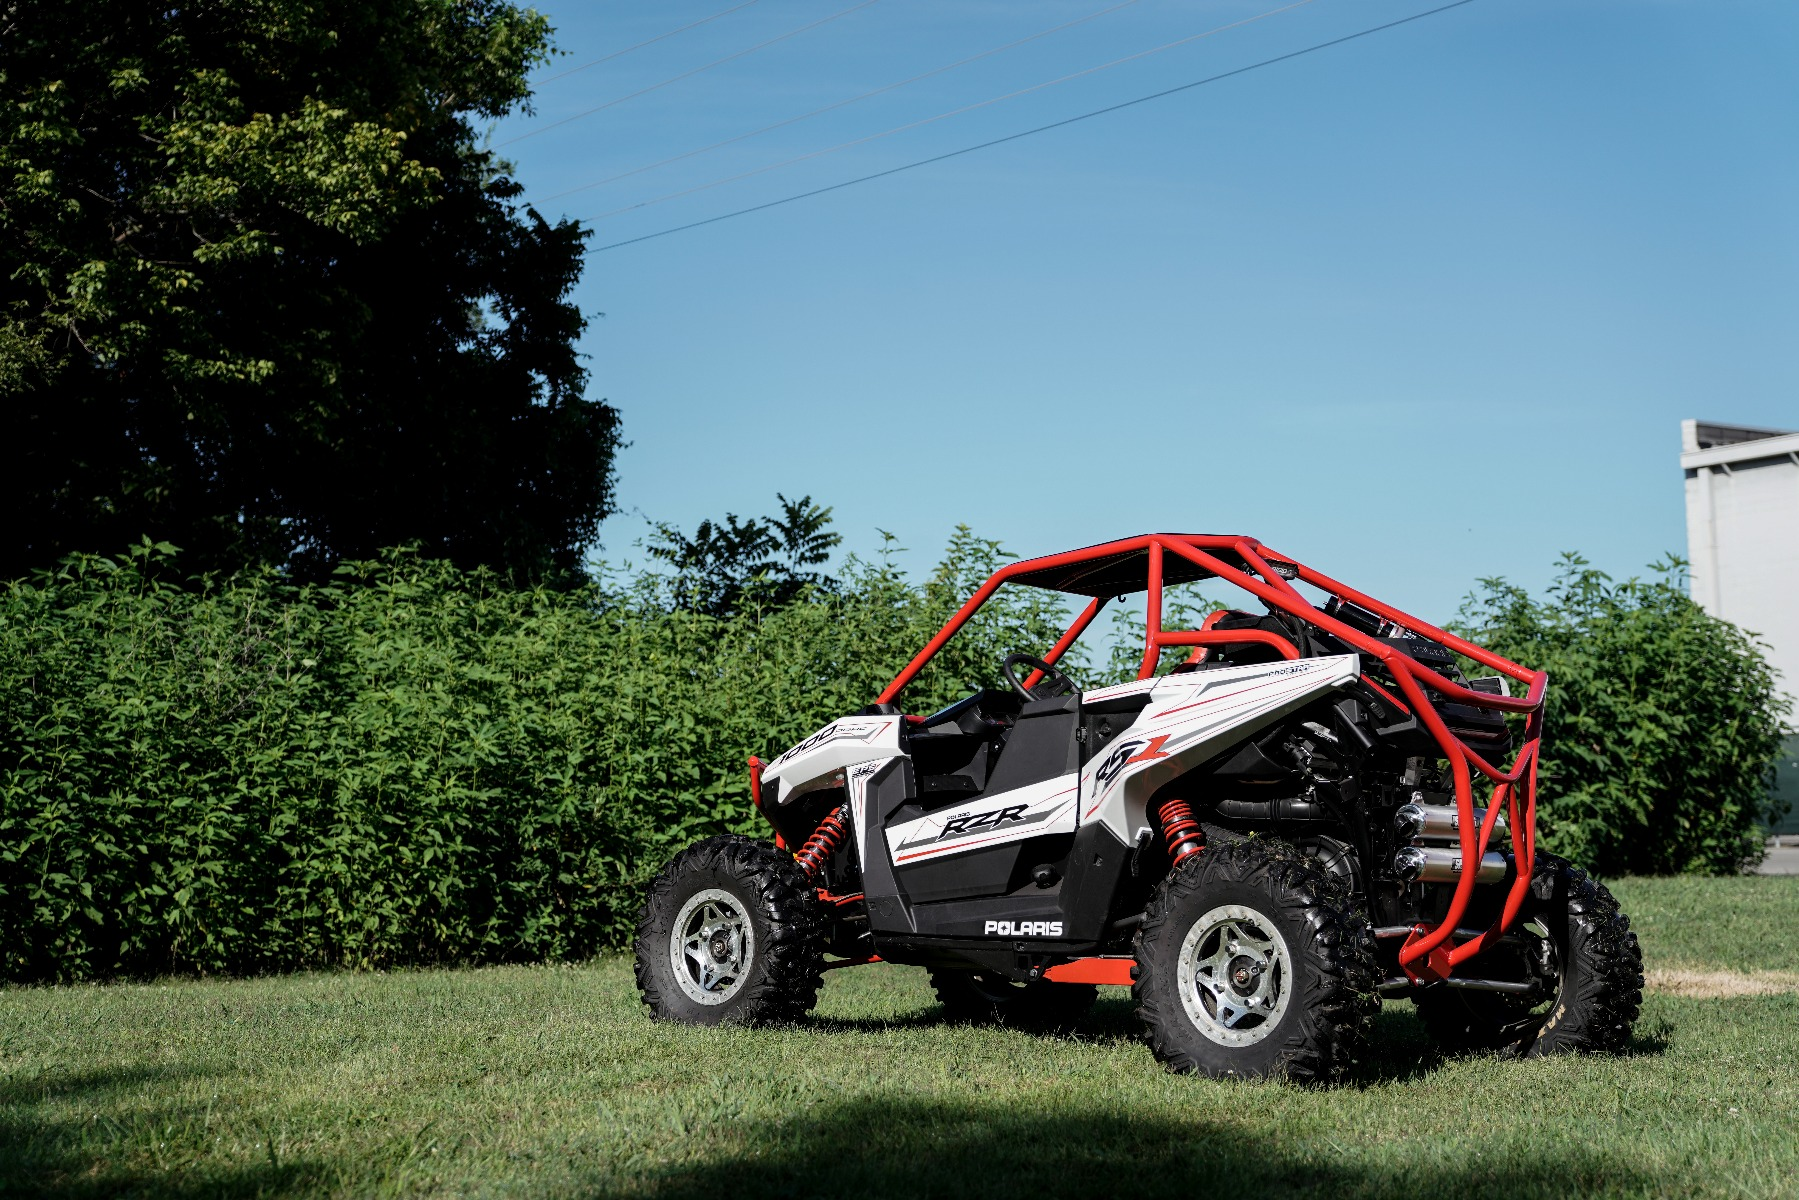 Polaris RZR RS1 Roll Cage in grass Image 13